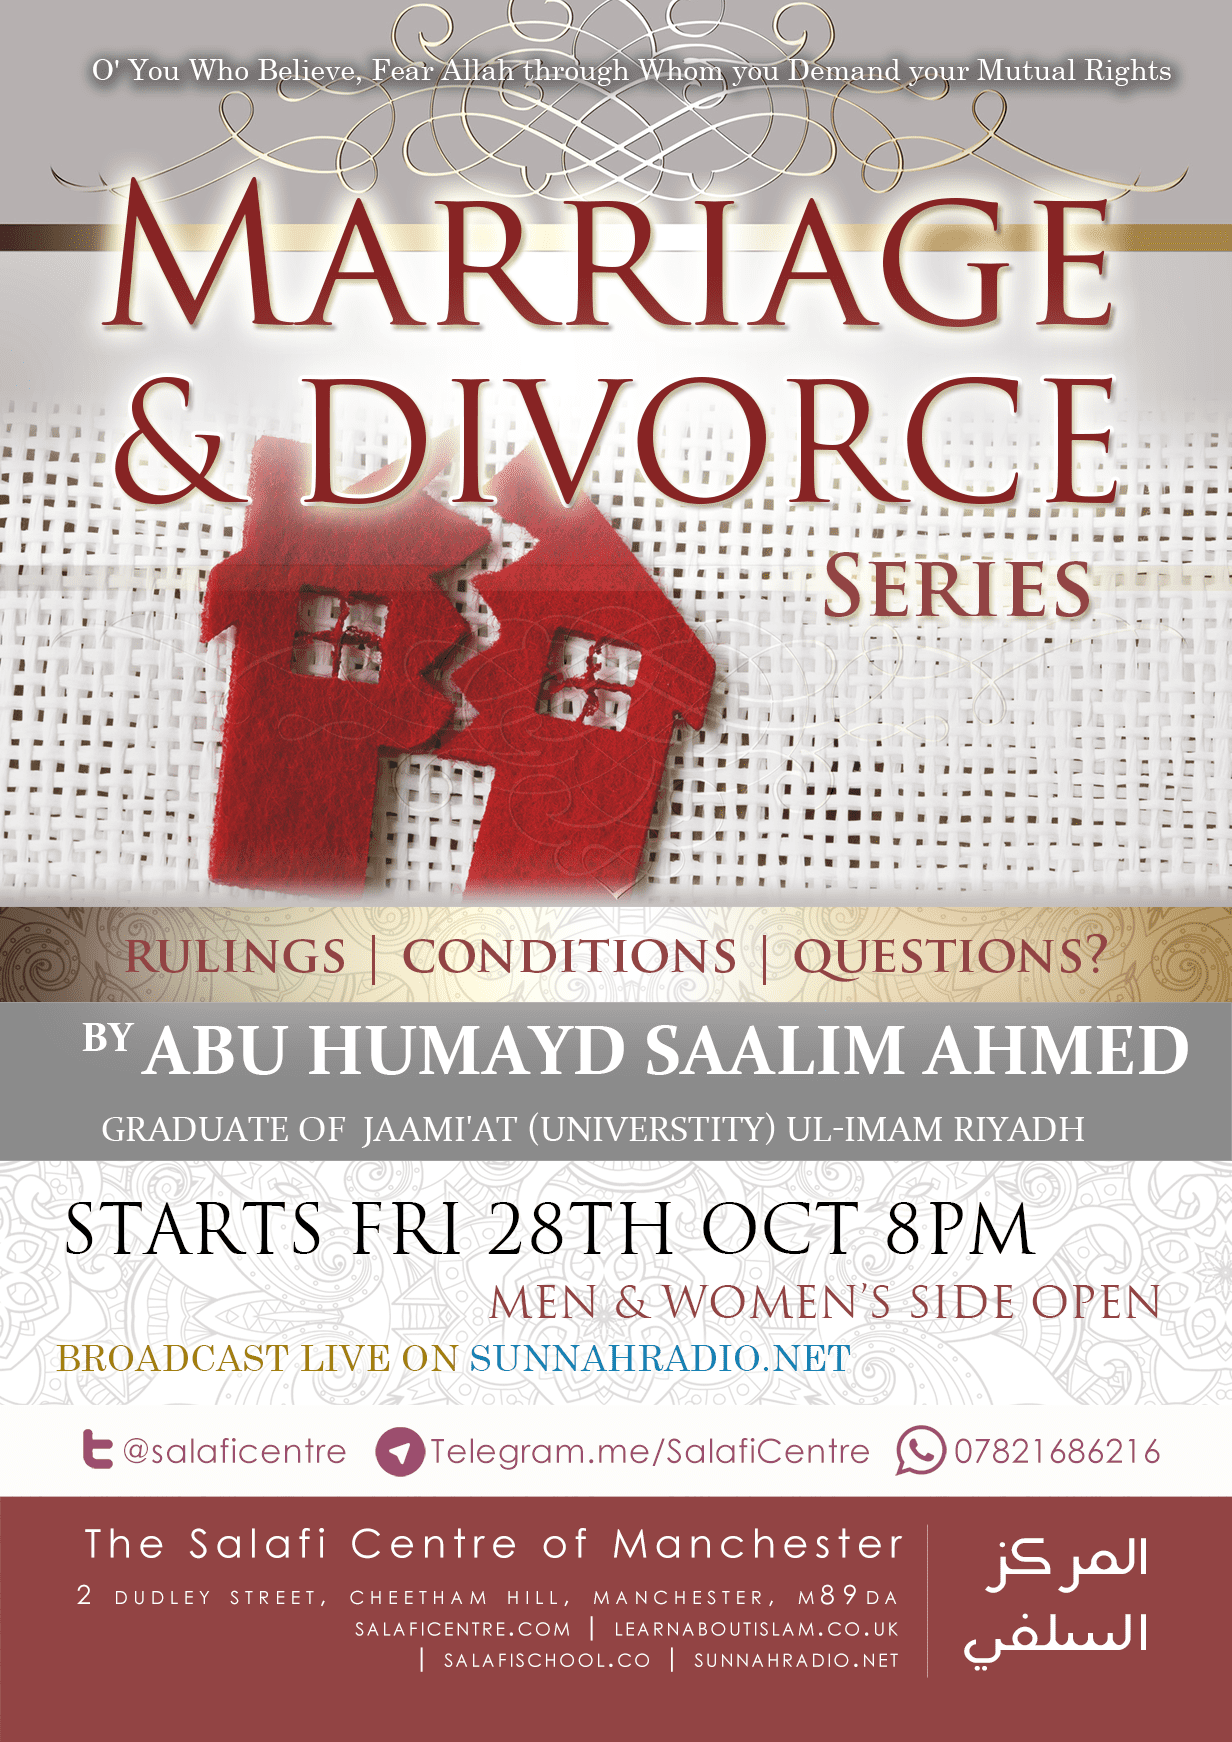 Marriage & Divorce Series: with Conditions, Rulings & Questions | Abu Humayd Salim Ahmed